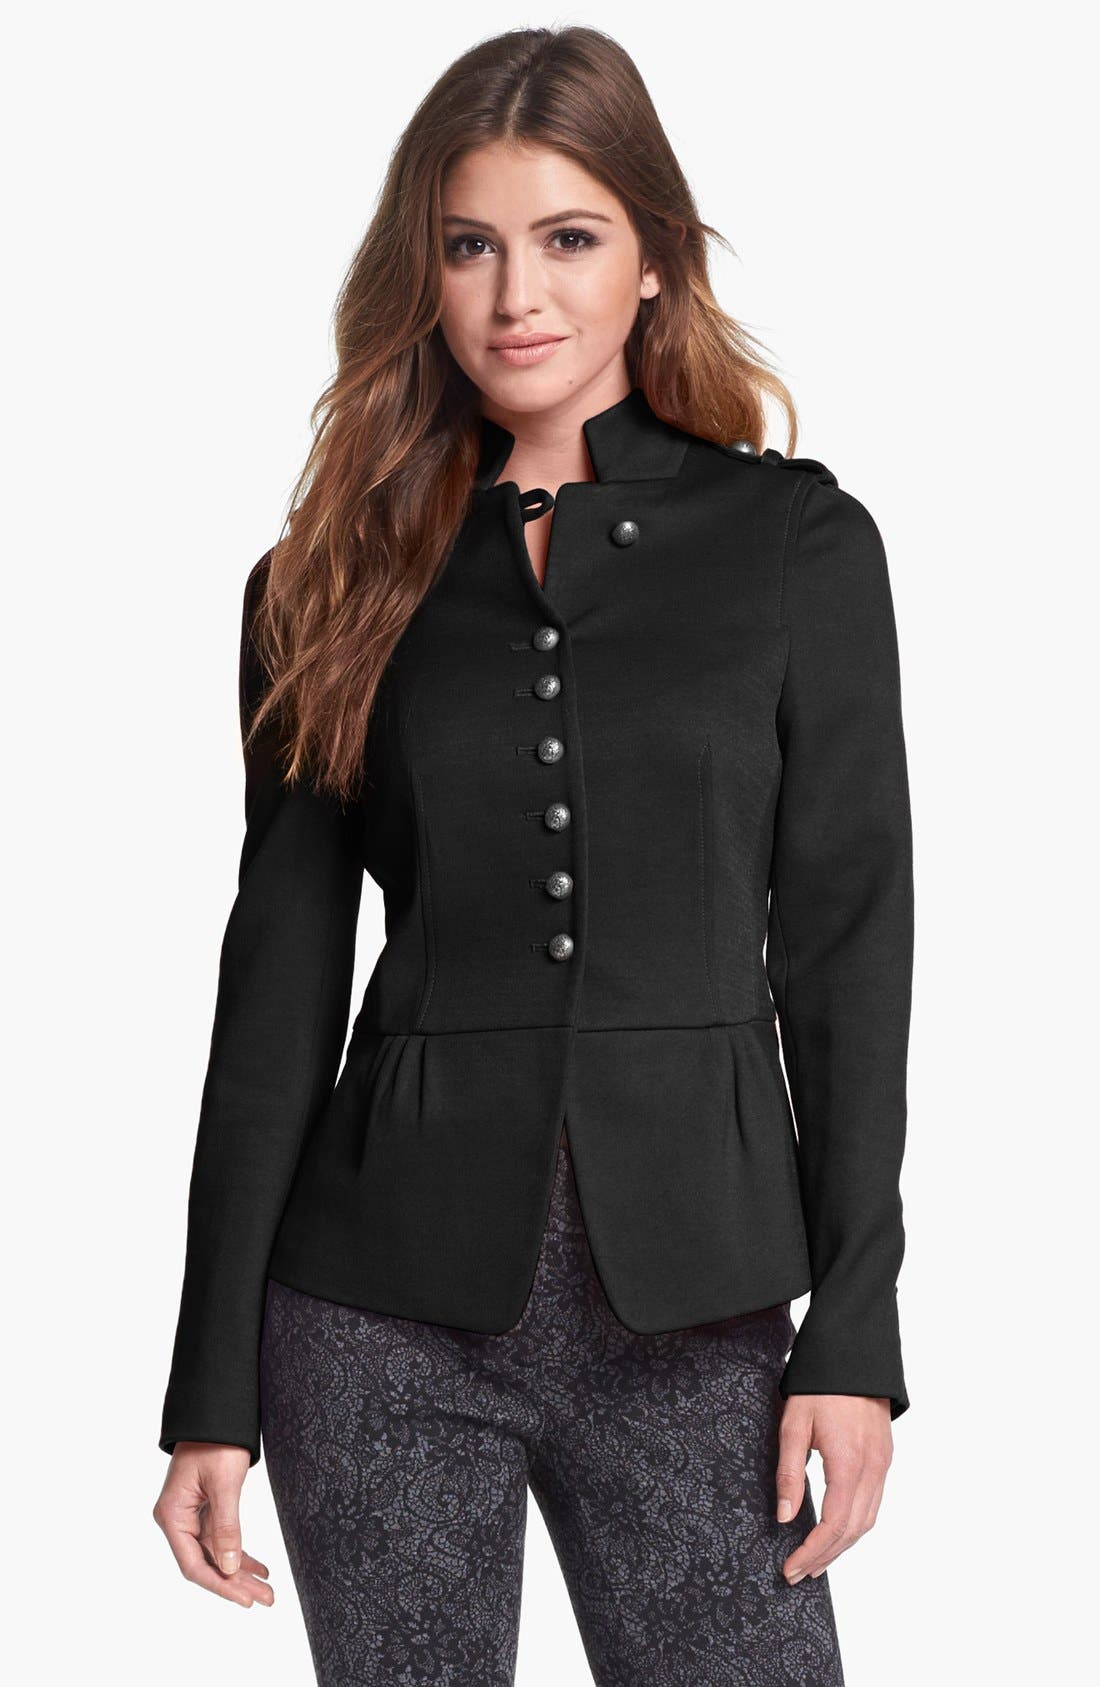 Alternate Image 1 Selected - Vince Camuto Military Ponte Peplum Jacket (Petite) (Nordstrom Exclusive)